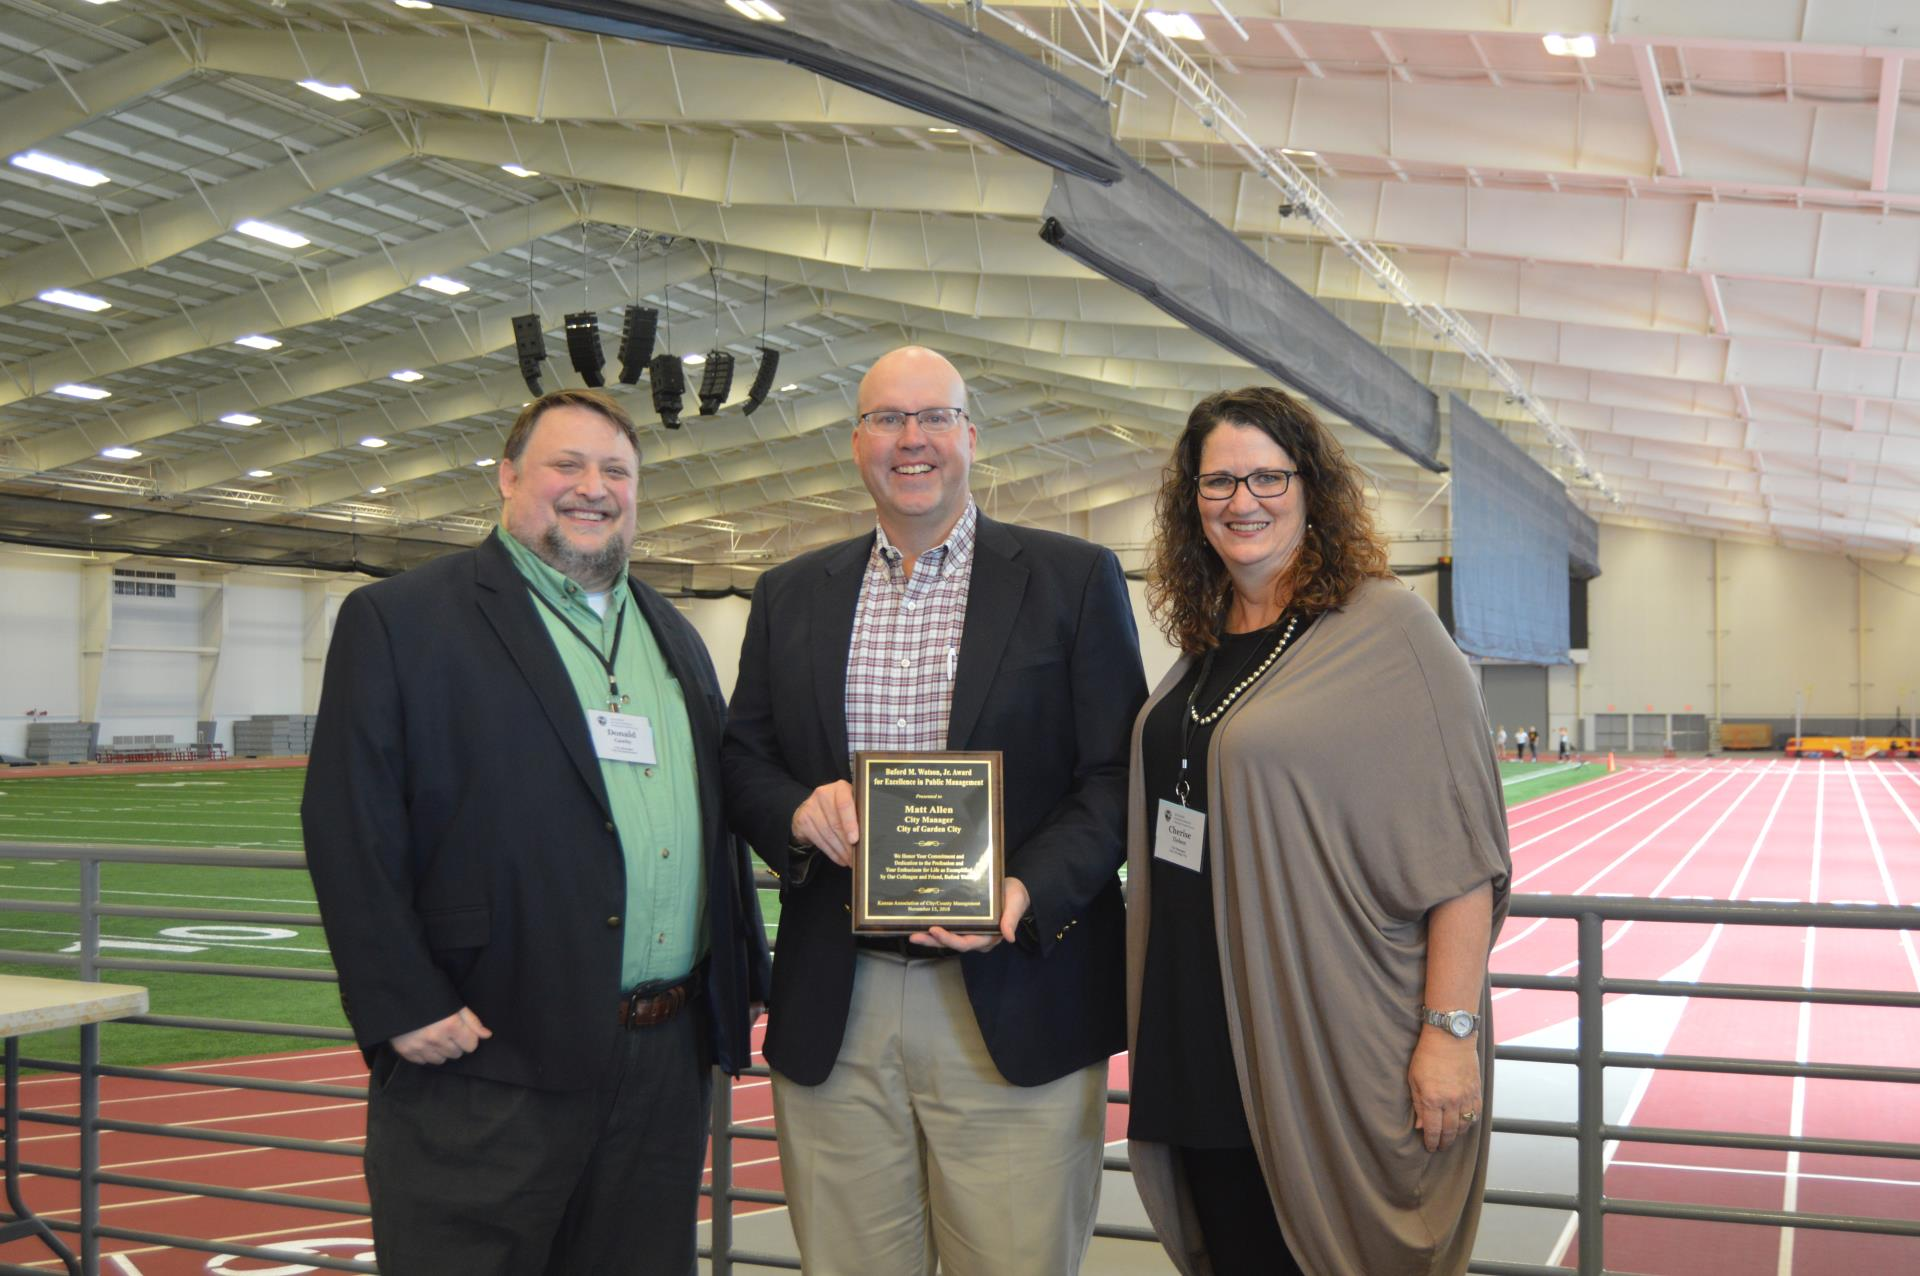 City Manager receives award for excellence in public management